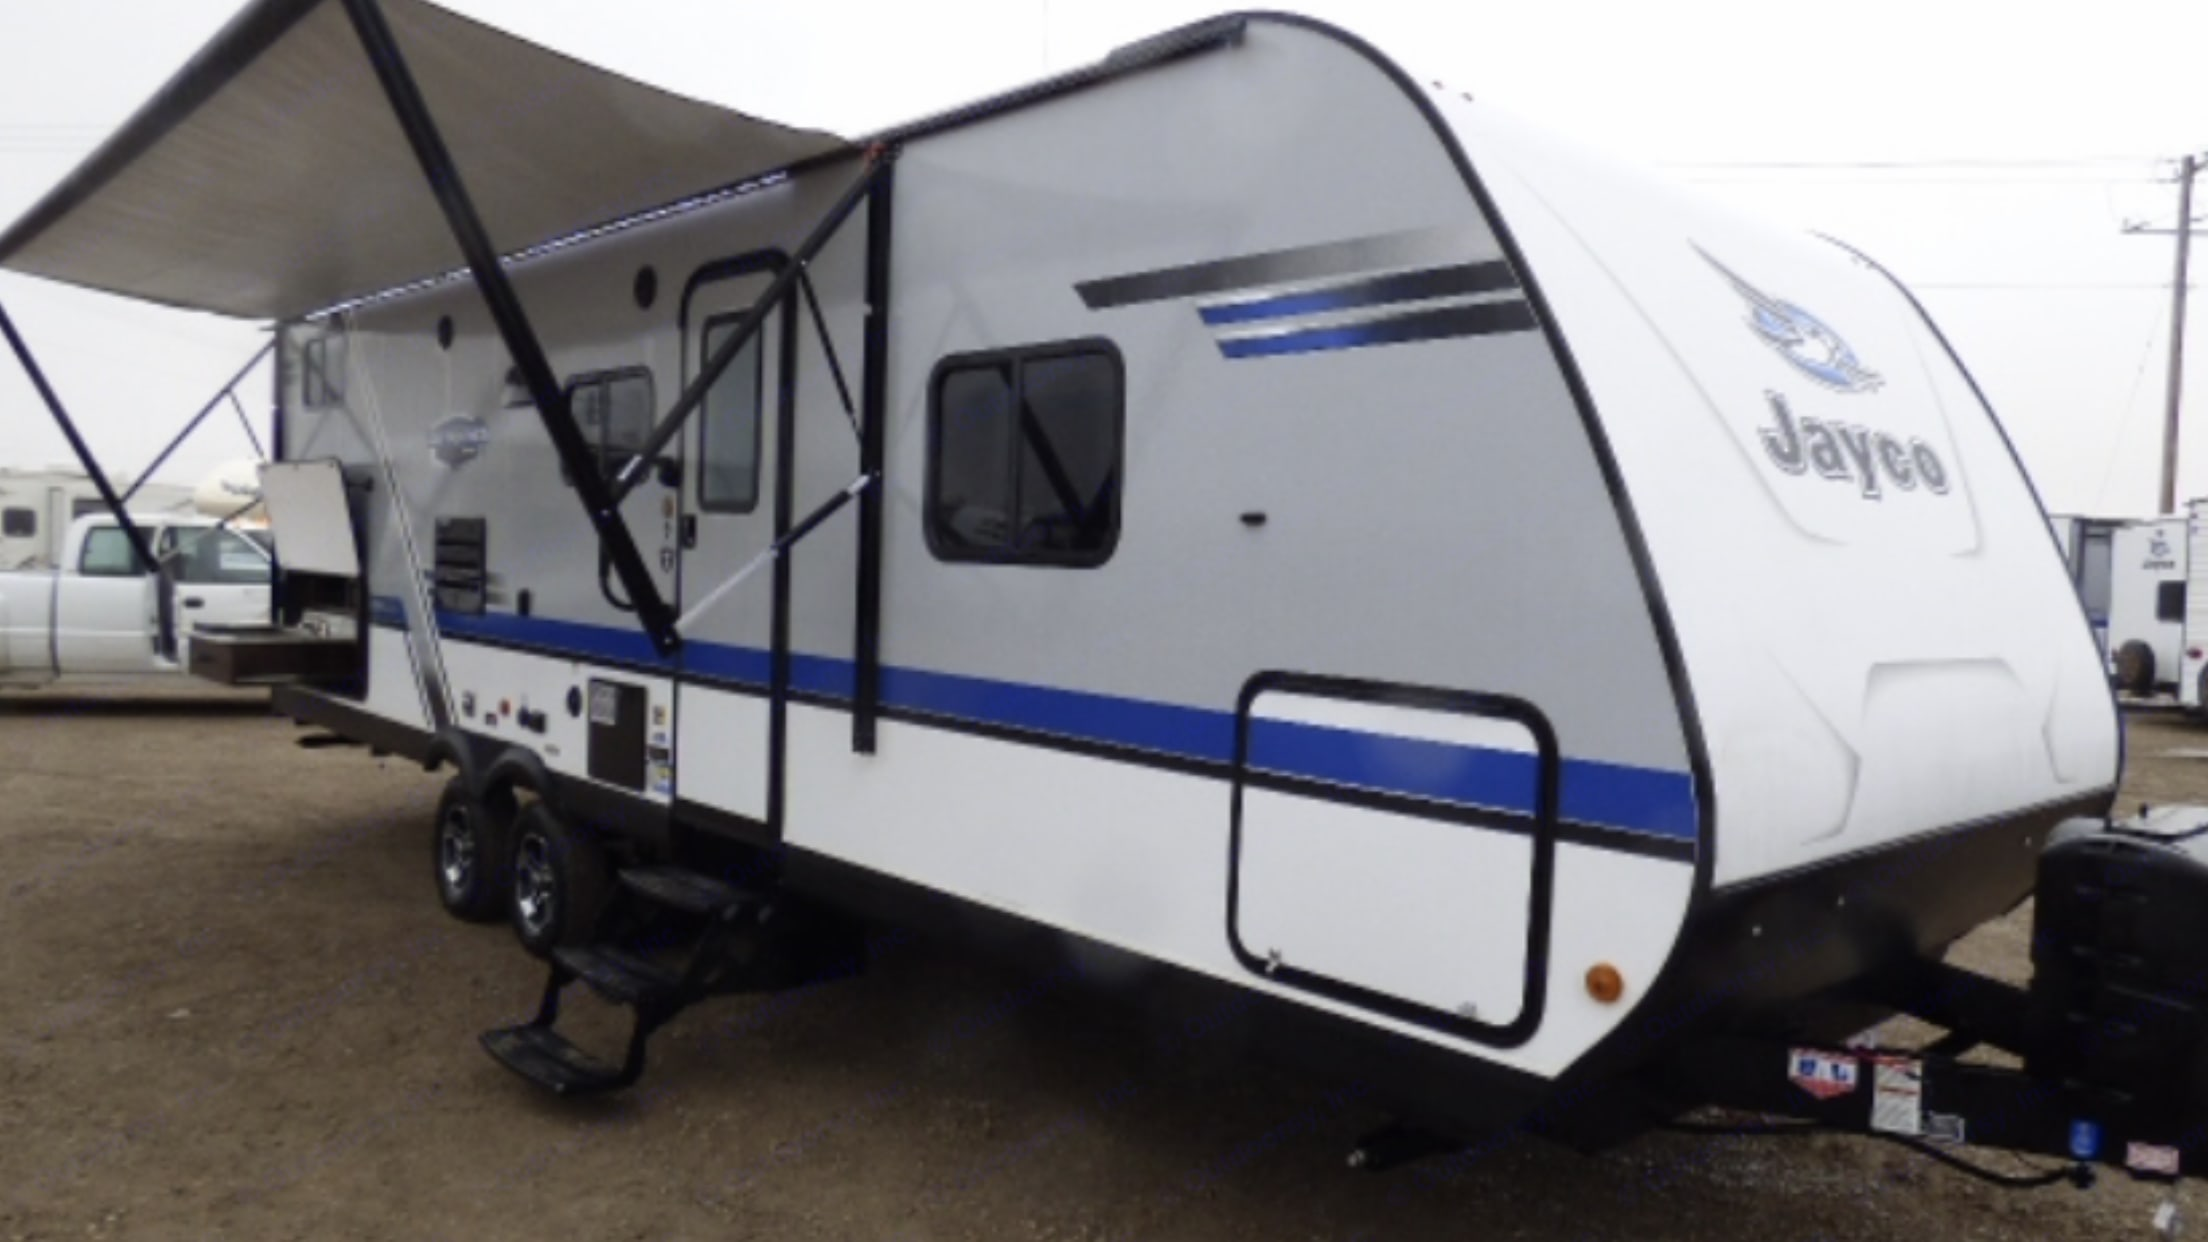 Large electric awning to keep cool outside! Please be sure to pull in awning at night, when it's windy and when you are gone. . Jayco Jay Feather 2019